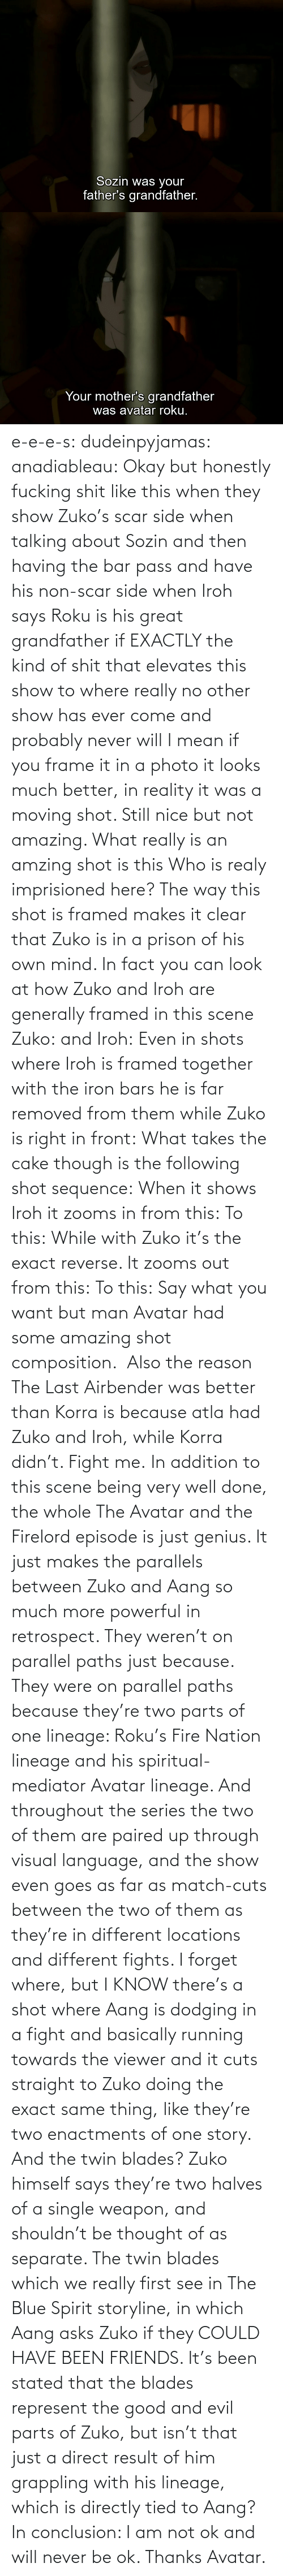 Just Because: e-e-e-s: dudeinpyjamas:   anadiableau: Okay but honestly fucking shit like this when they show Zuko's scar side when talking about Sozin and then having the bar pass and have his non-scar side when Iroh says Roku is his great grandfather if EXACTLY the kind of shit that elevates this show to where really no other show has ever come and probably never will I mean if you frame it in a photo it looks much better, in reality it was a moving shot. Still nice but not amazing. What really is an amzing shot is this Who is realy imprisioned here? The way this shot is framed makes it clear that Zuko is in a prison of his own mind. In fact you can look at how Zuko and Iroh are generally framed in this scene Zuko: and Iroh: Even in shots where Iroh is framed together with the iron bars he is far removed from them while Zuko is right in front:  What takes the cake though is the following shot sequence: When it shows Iroh it zooms in from this: To this: While with Zuko it's the exact reverse. It zooms out from this: To this: Say what you want but man Avatar had some amazing shot composition.   Also the reason The Last Airbender was better than Korra is because atla had Zuko and Iroh, while Korra didn't. Fight me.    In addition to this scene being very well done, the whole The Avatar and the Firelord episode is just genius.  It just makes the parallels between Zuko and Aang so much more powerful in retrospect.  They weren't on parallel paths just because.  They were on parallel paths because they're two parts of one lineage: Roku's Fire Nation lineage and his spiritual-mediator Avatar lineage.  And throughout the series the two of them are paired up through visual language, and the show even goes as far as match-cuts between the two of them as they're in different locations and different fights.  I forget where, but I KNOW there's a shot where Aang is dodging in a fight and basically running towards the viewer and it cuts straight to Zuko doing the exact same thing, like they're two enactments of one story.   And the twin blades?  Zuko himself says they're two halves of a single weapon, and shouldn't be thought of as separate.  The twin blades which we really first see in The Blue Spirit storyline, in which Aang asks Zuko if they COULD HAVE BEEN FRIENDS.  It's been stated that the blades represent the good and evil parts of Zuko, but isn't that just a direct result of him grappling with his lineage, which is directly tied to Aang? In conclusion: I am not ok and will never be ok.  Thanks Avatar.